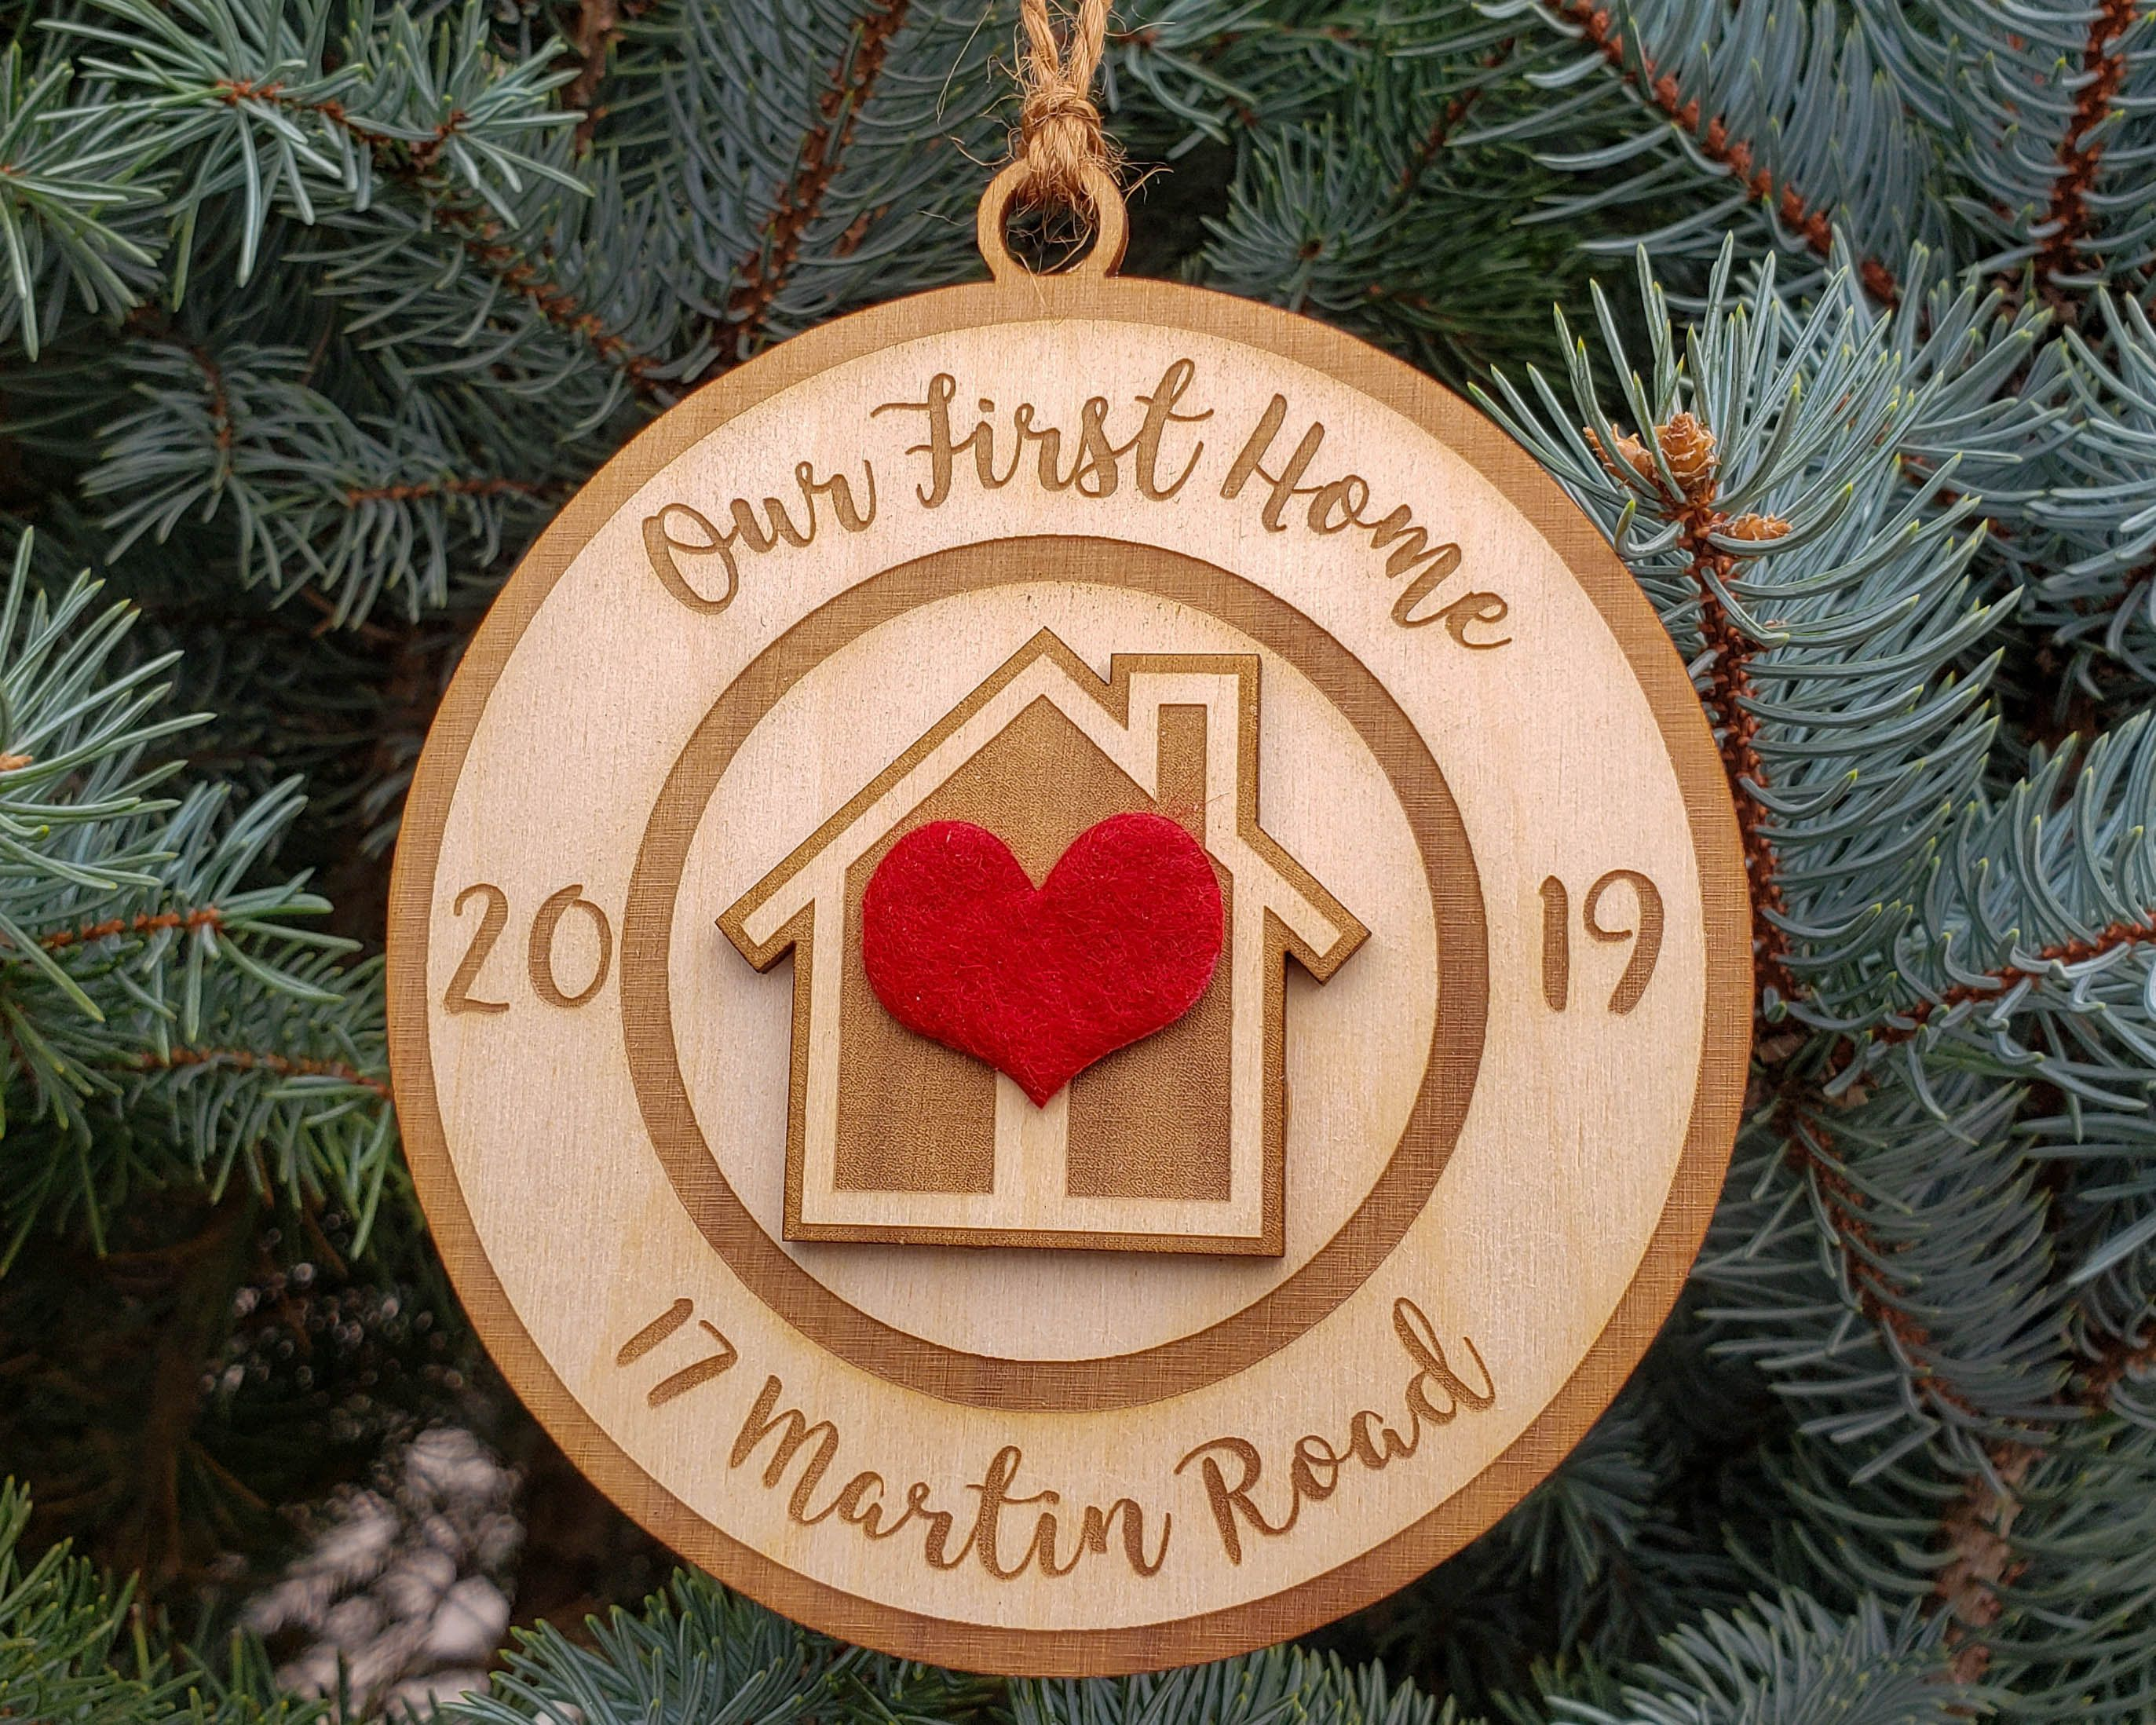 First Home Christmas Ornament 2020 Our First Home Christmas Ornament Our New Home Christmas | Etsy in